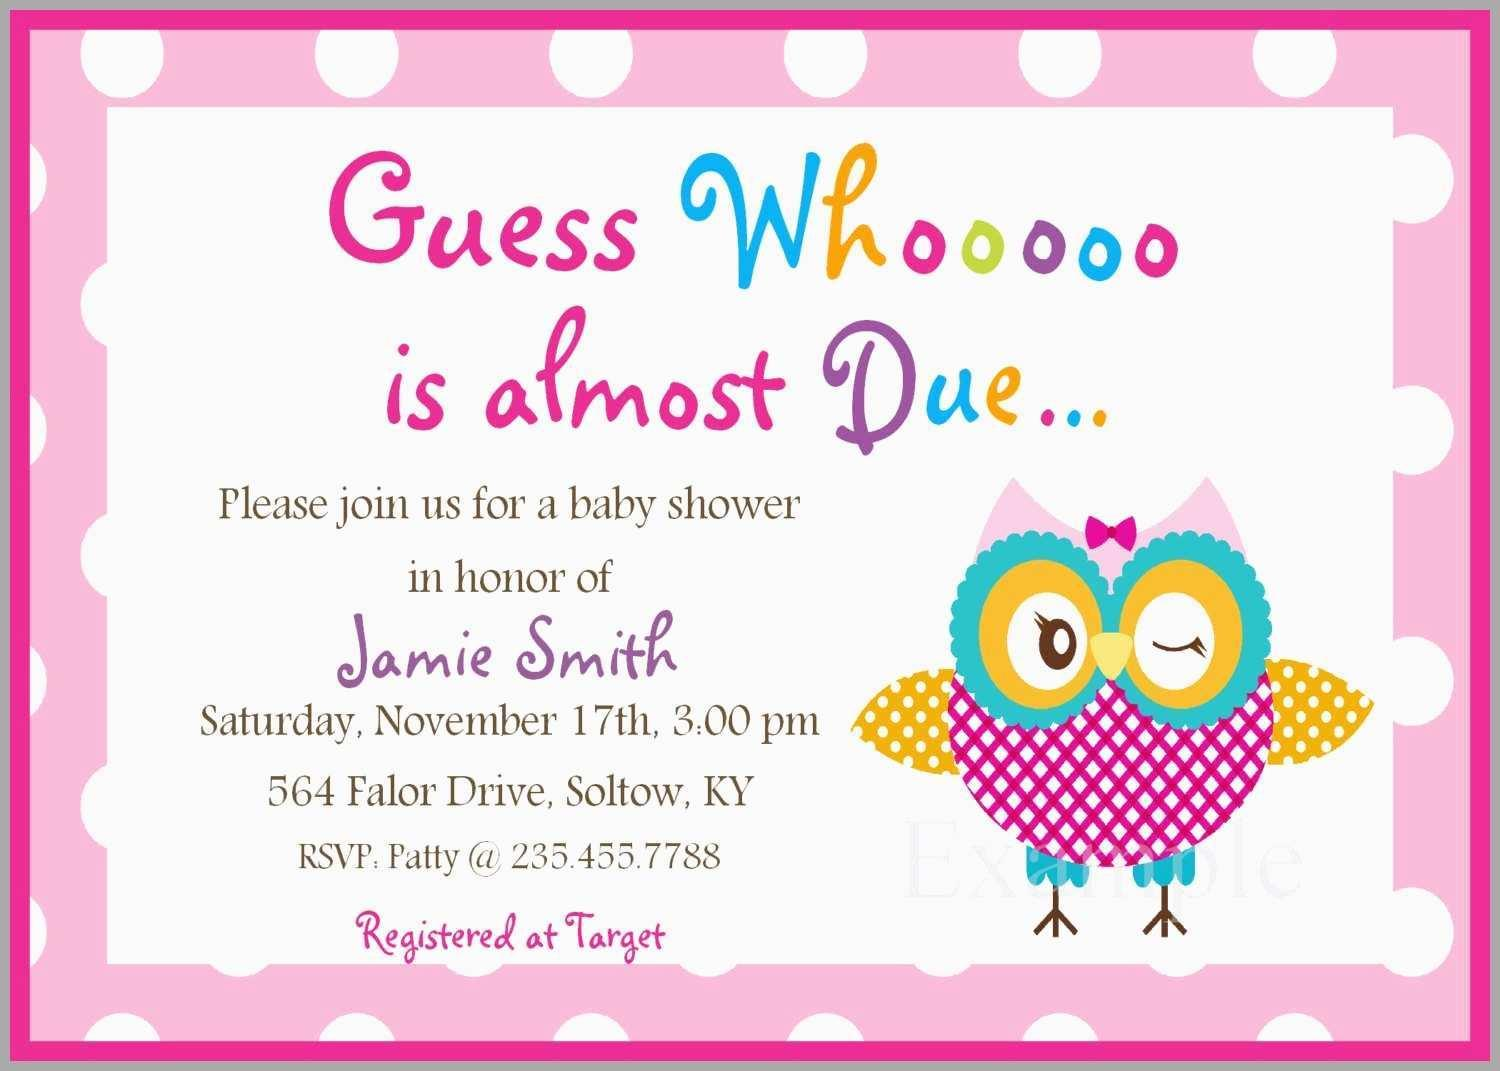 Blank Templates For Baby Shower Invitations